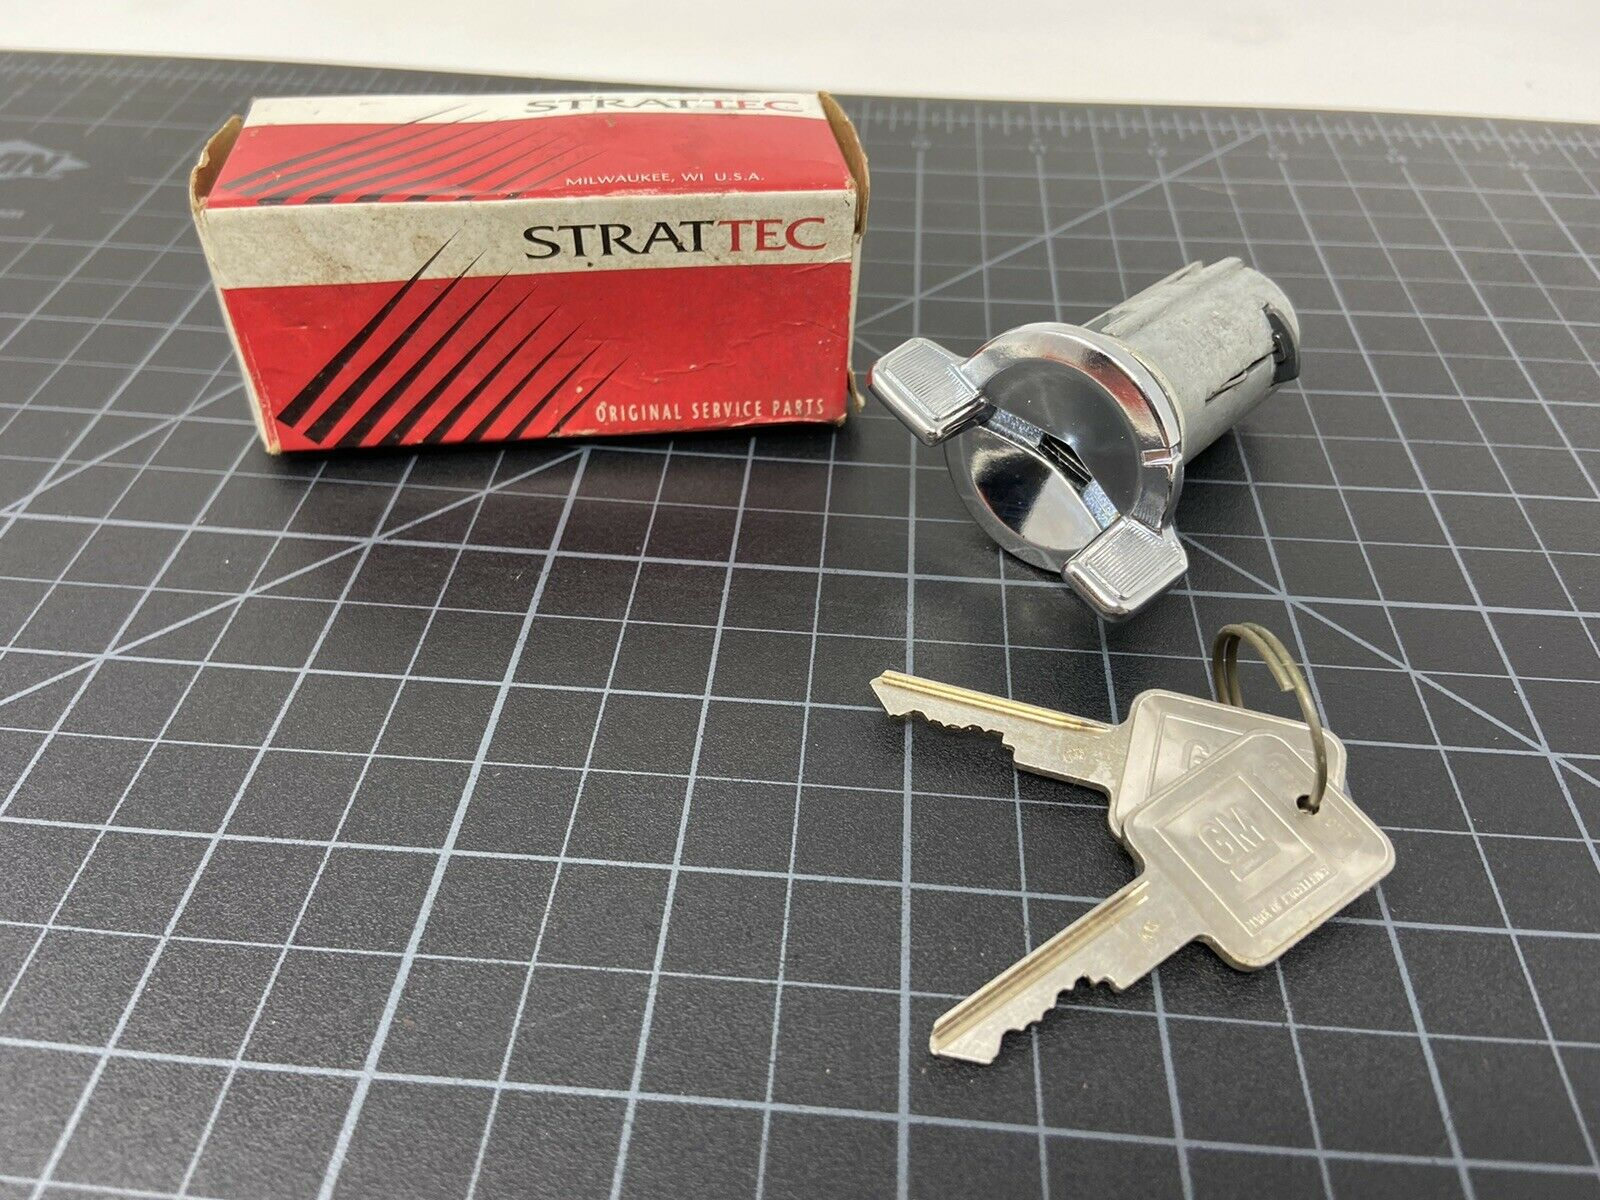 Chrome Auto Transmission Strattec Lock Part coded with keys 701398 GM Ignition Lock